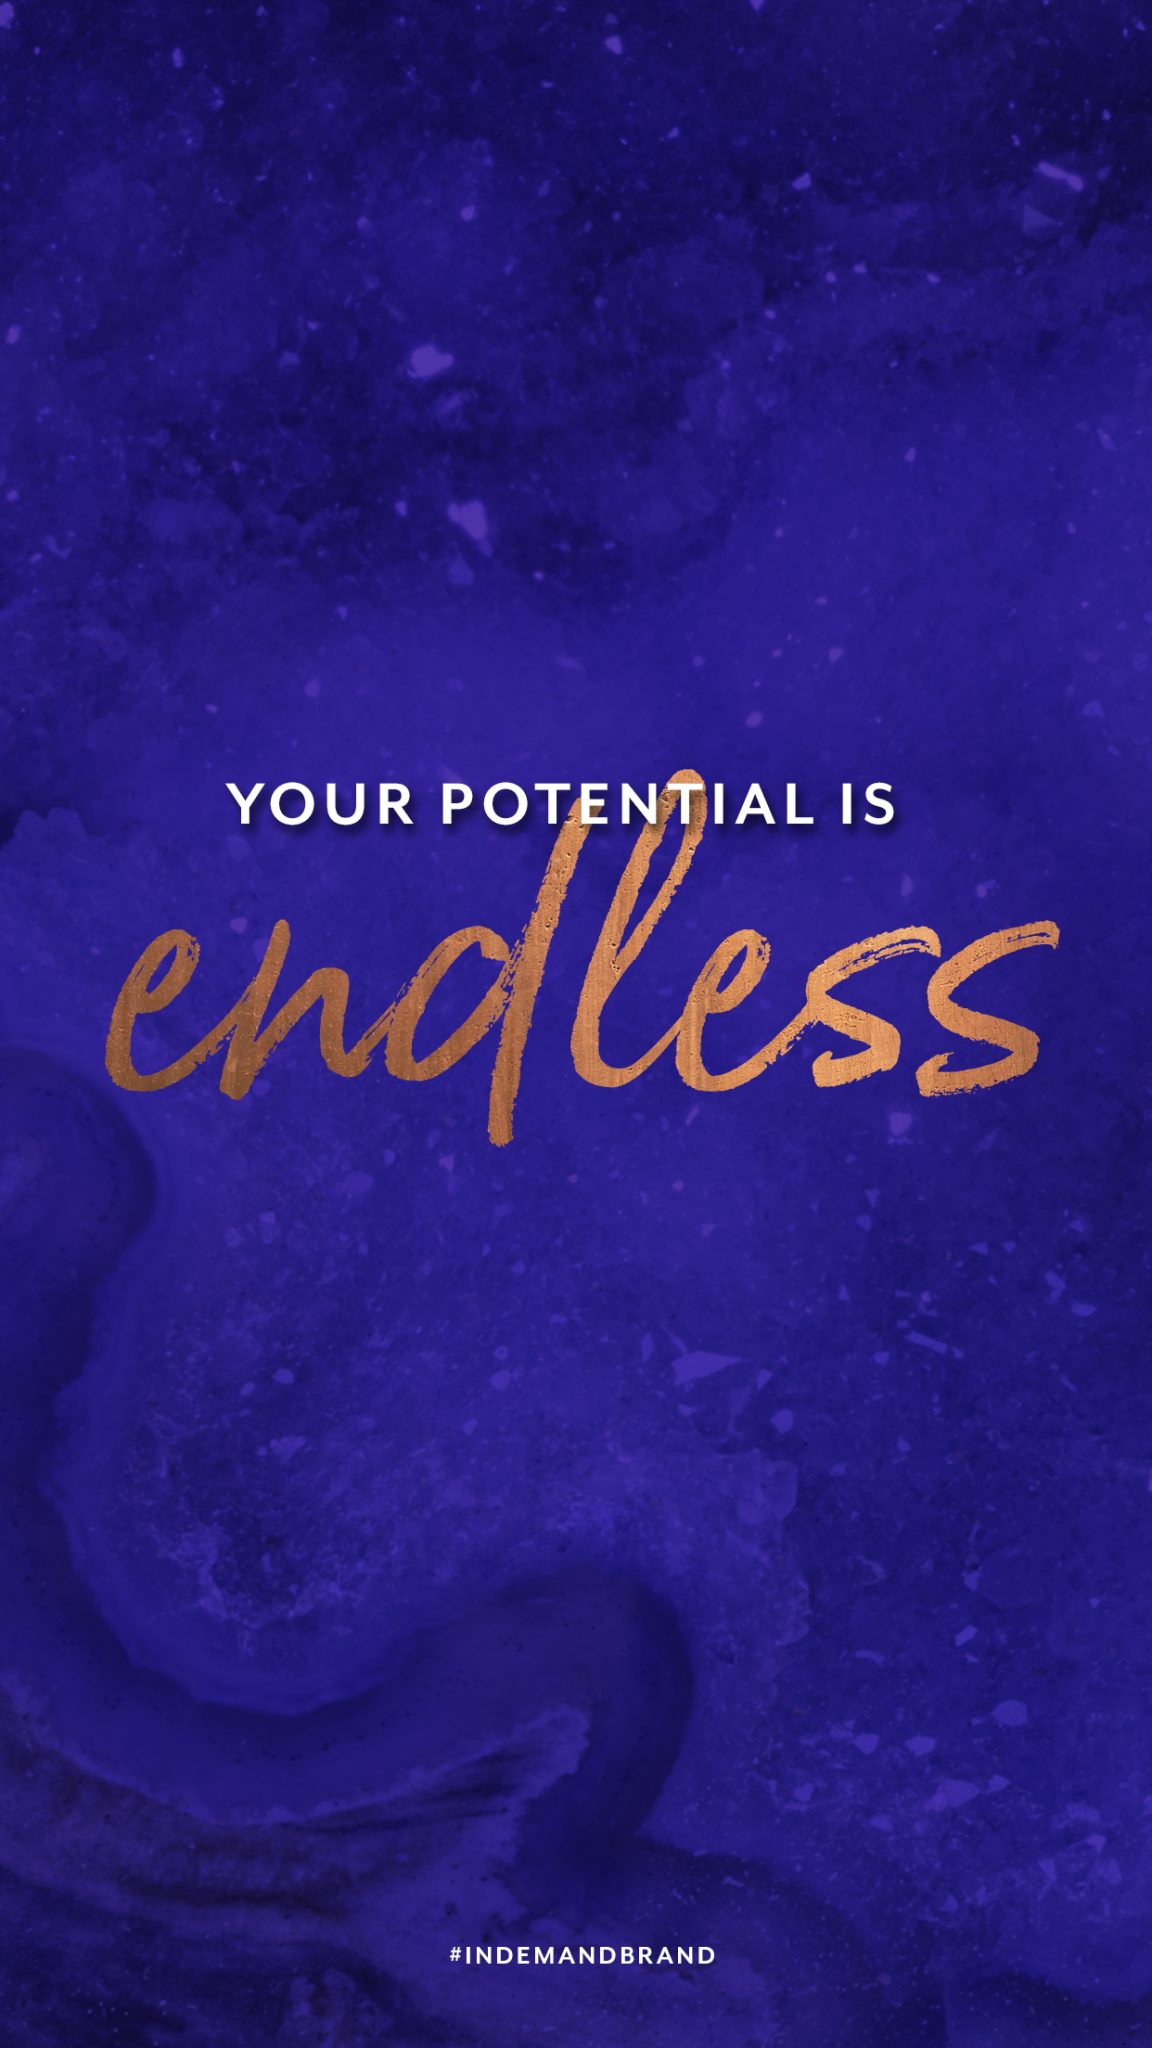 Your potential is endless. #InDemandBrand